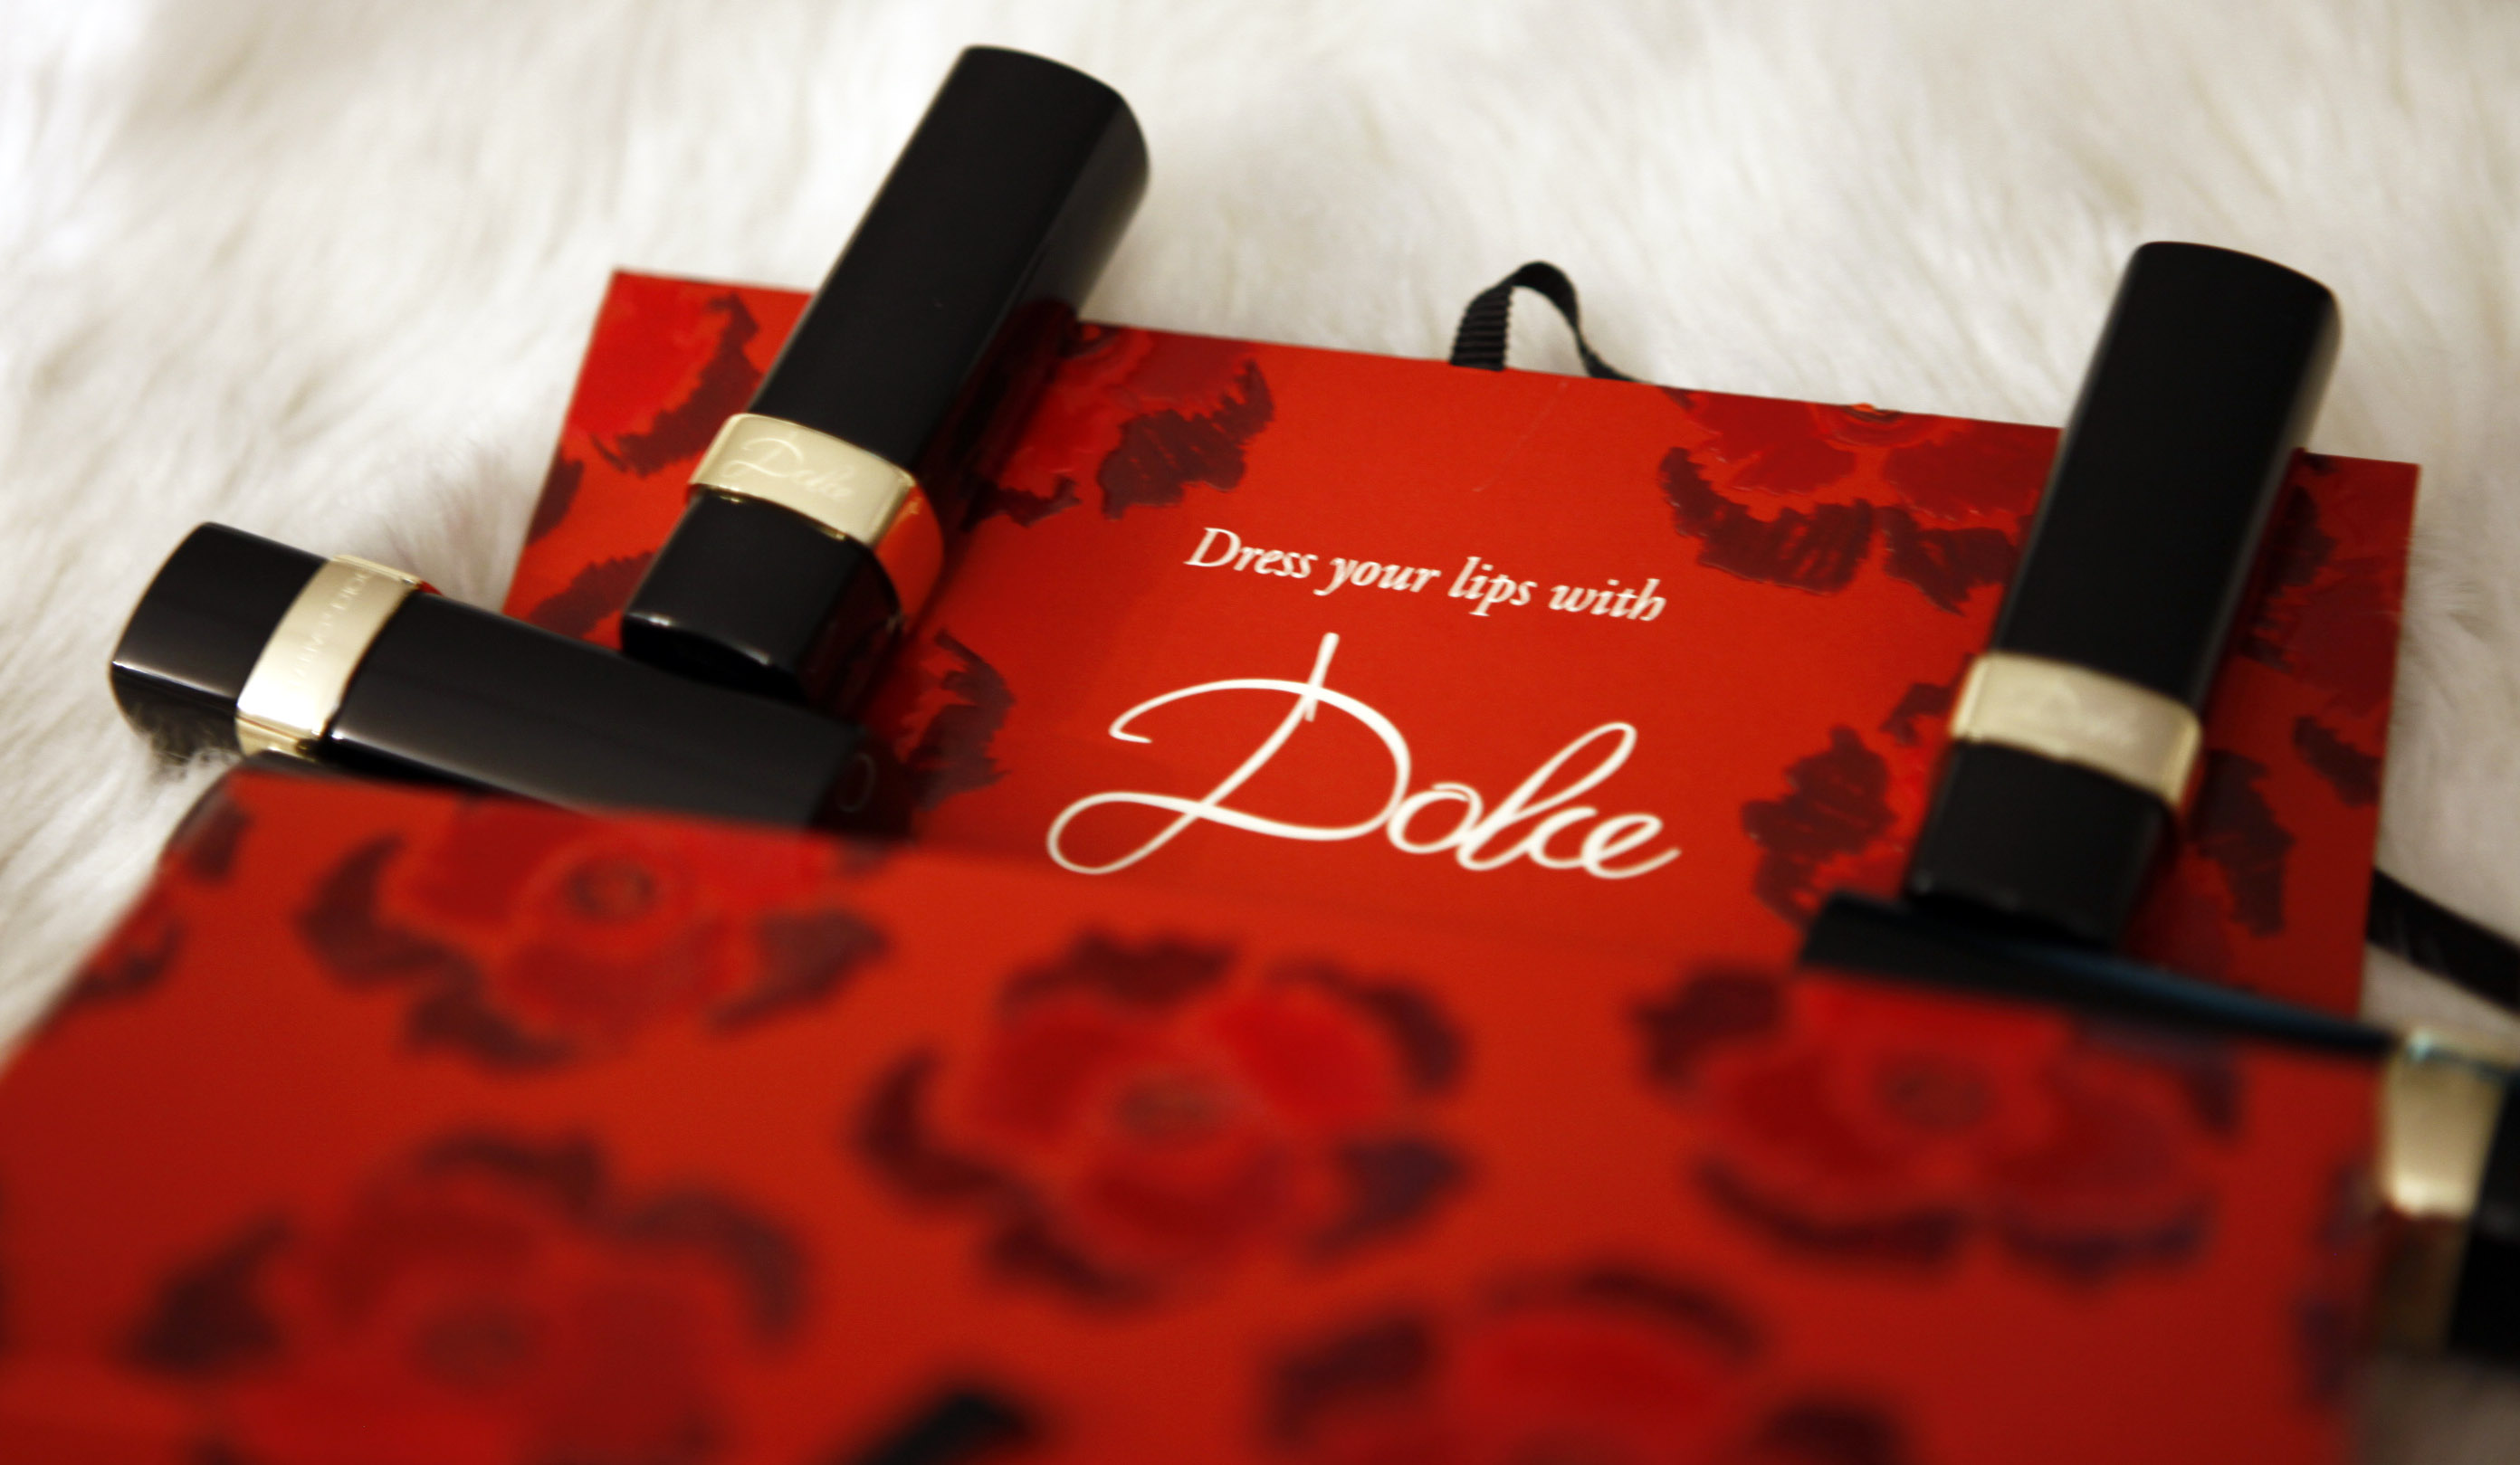 dress your lips with dolce